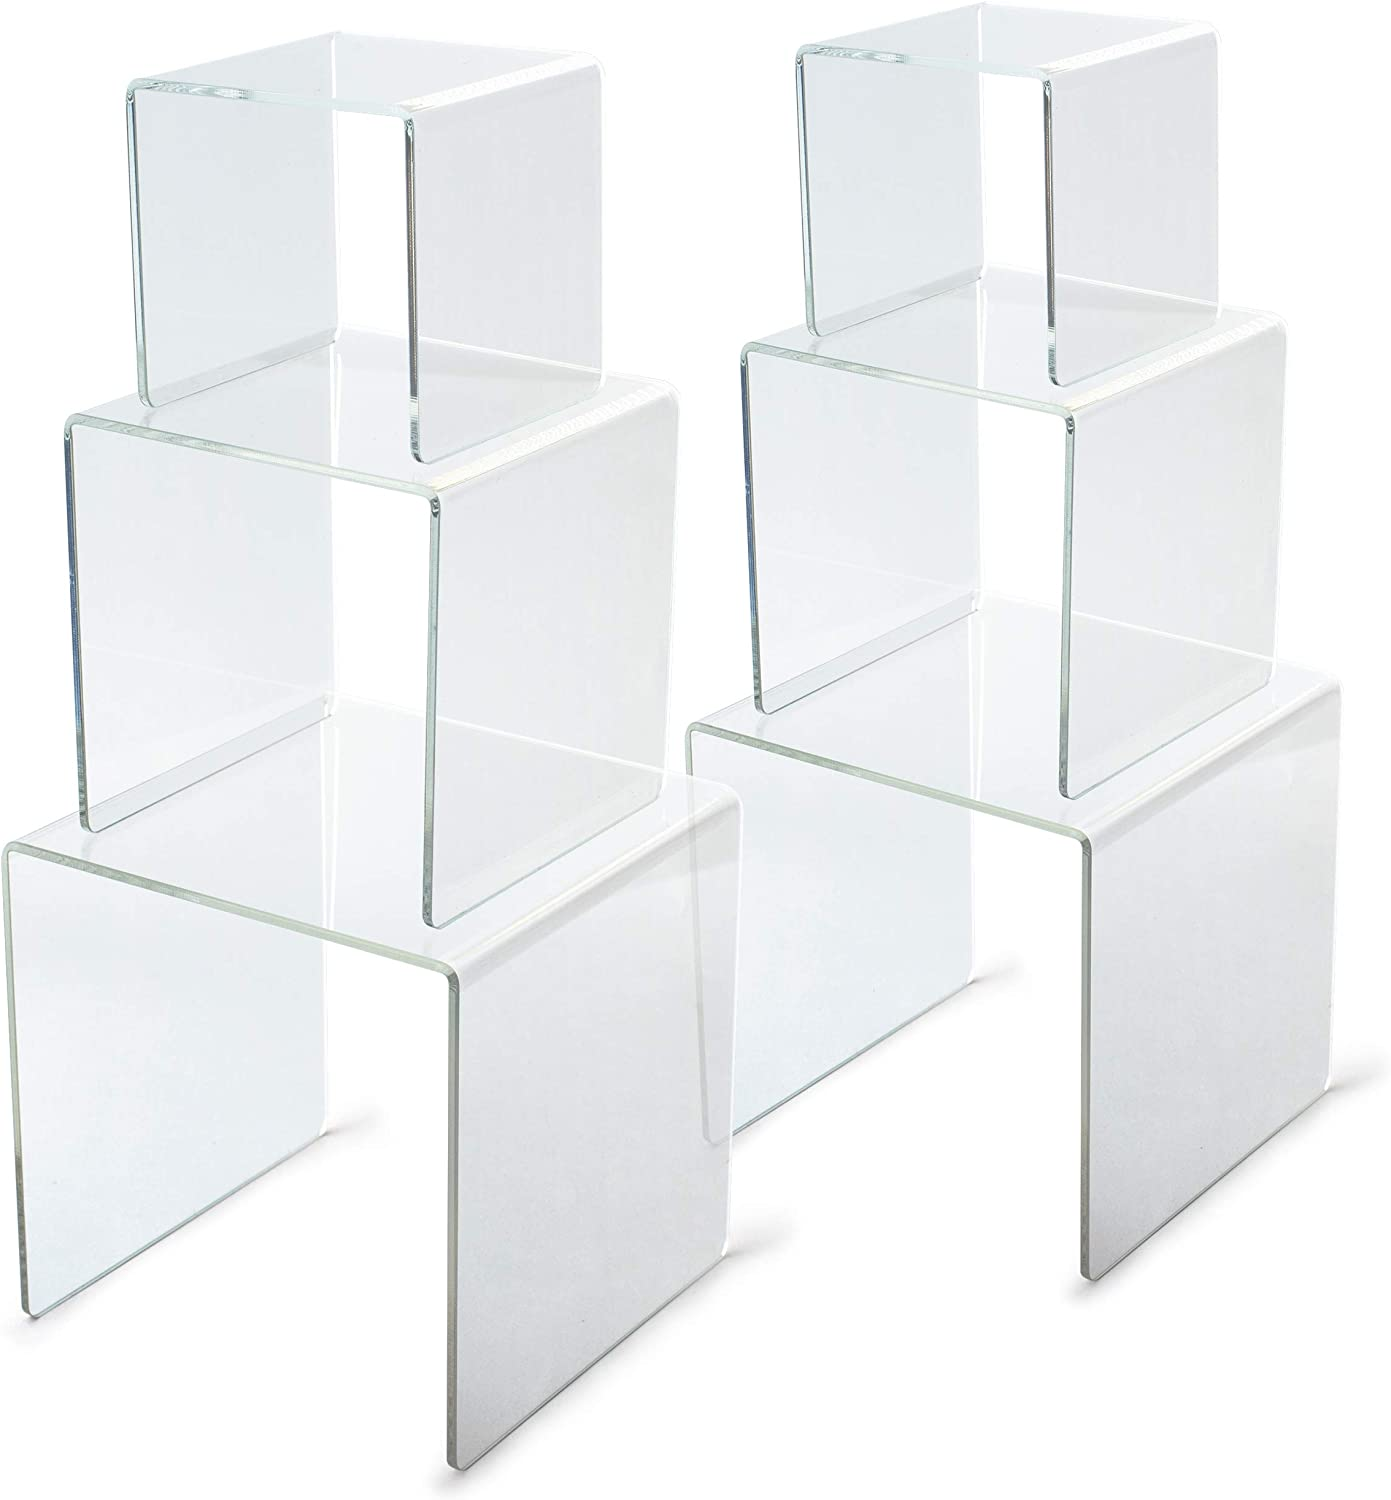 Acrylic Riser, Acrylic Display Risers, Acrylic Display Stands, Acrylic Risers for Display, Funko Pop Display Stand, Candy Table Supplies, Acrylic Shelf Riser, Clear Cake Stand, 2 Sets (3